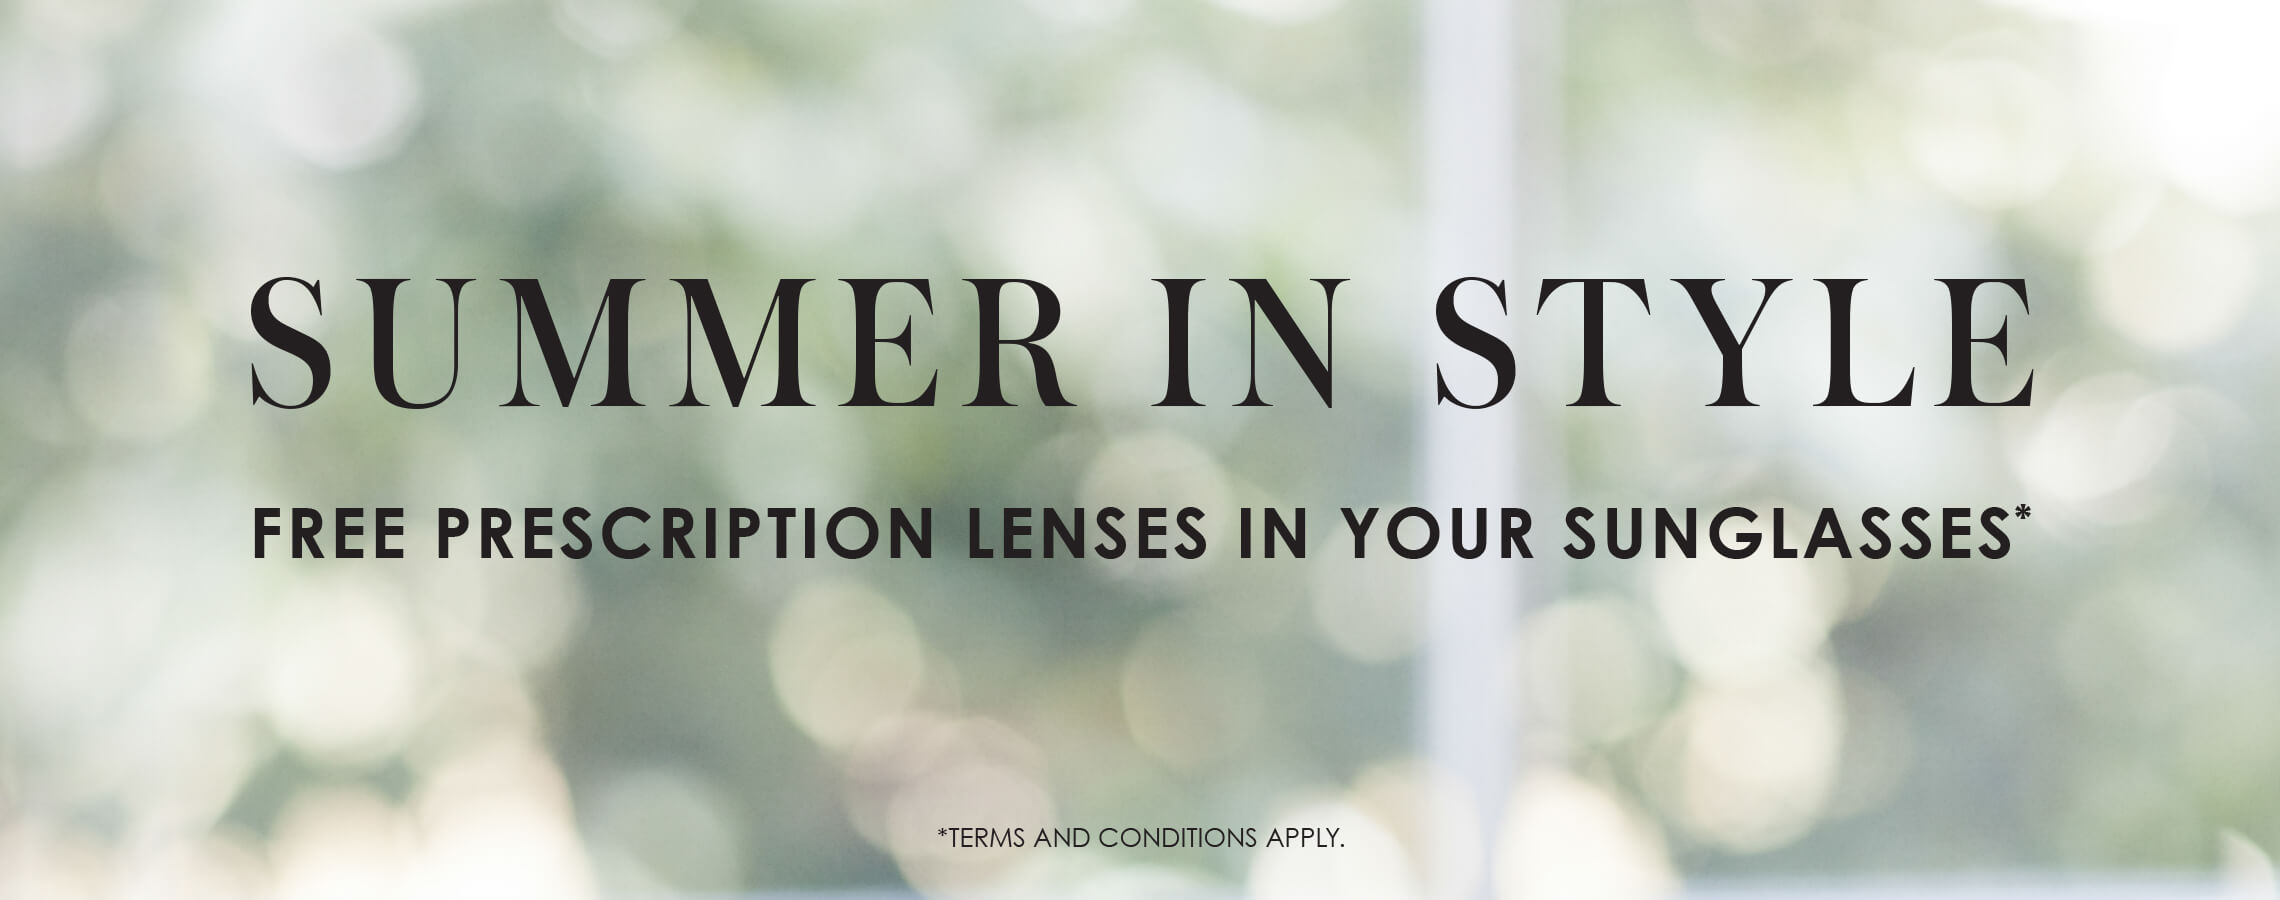 2280-x-900-Summer-in-Style-web